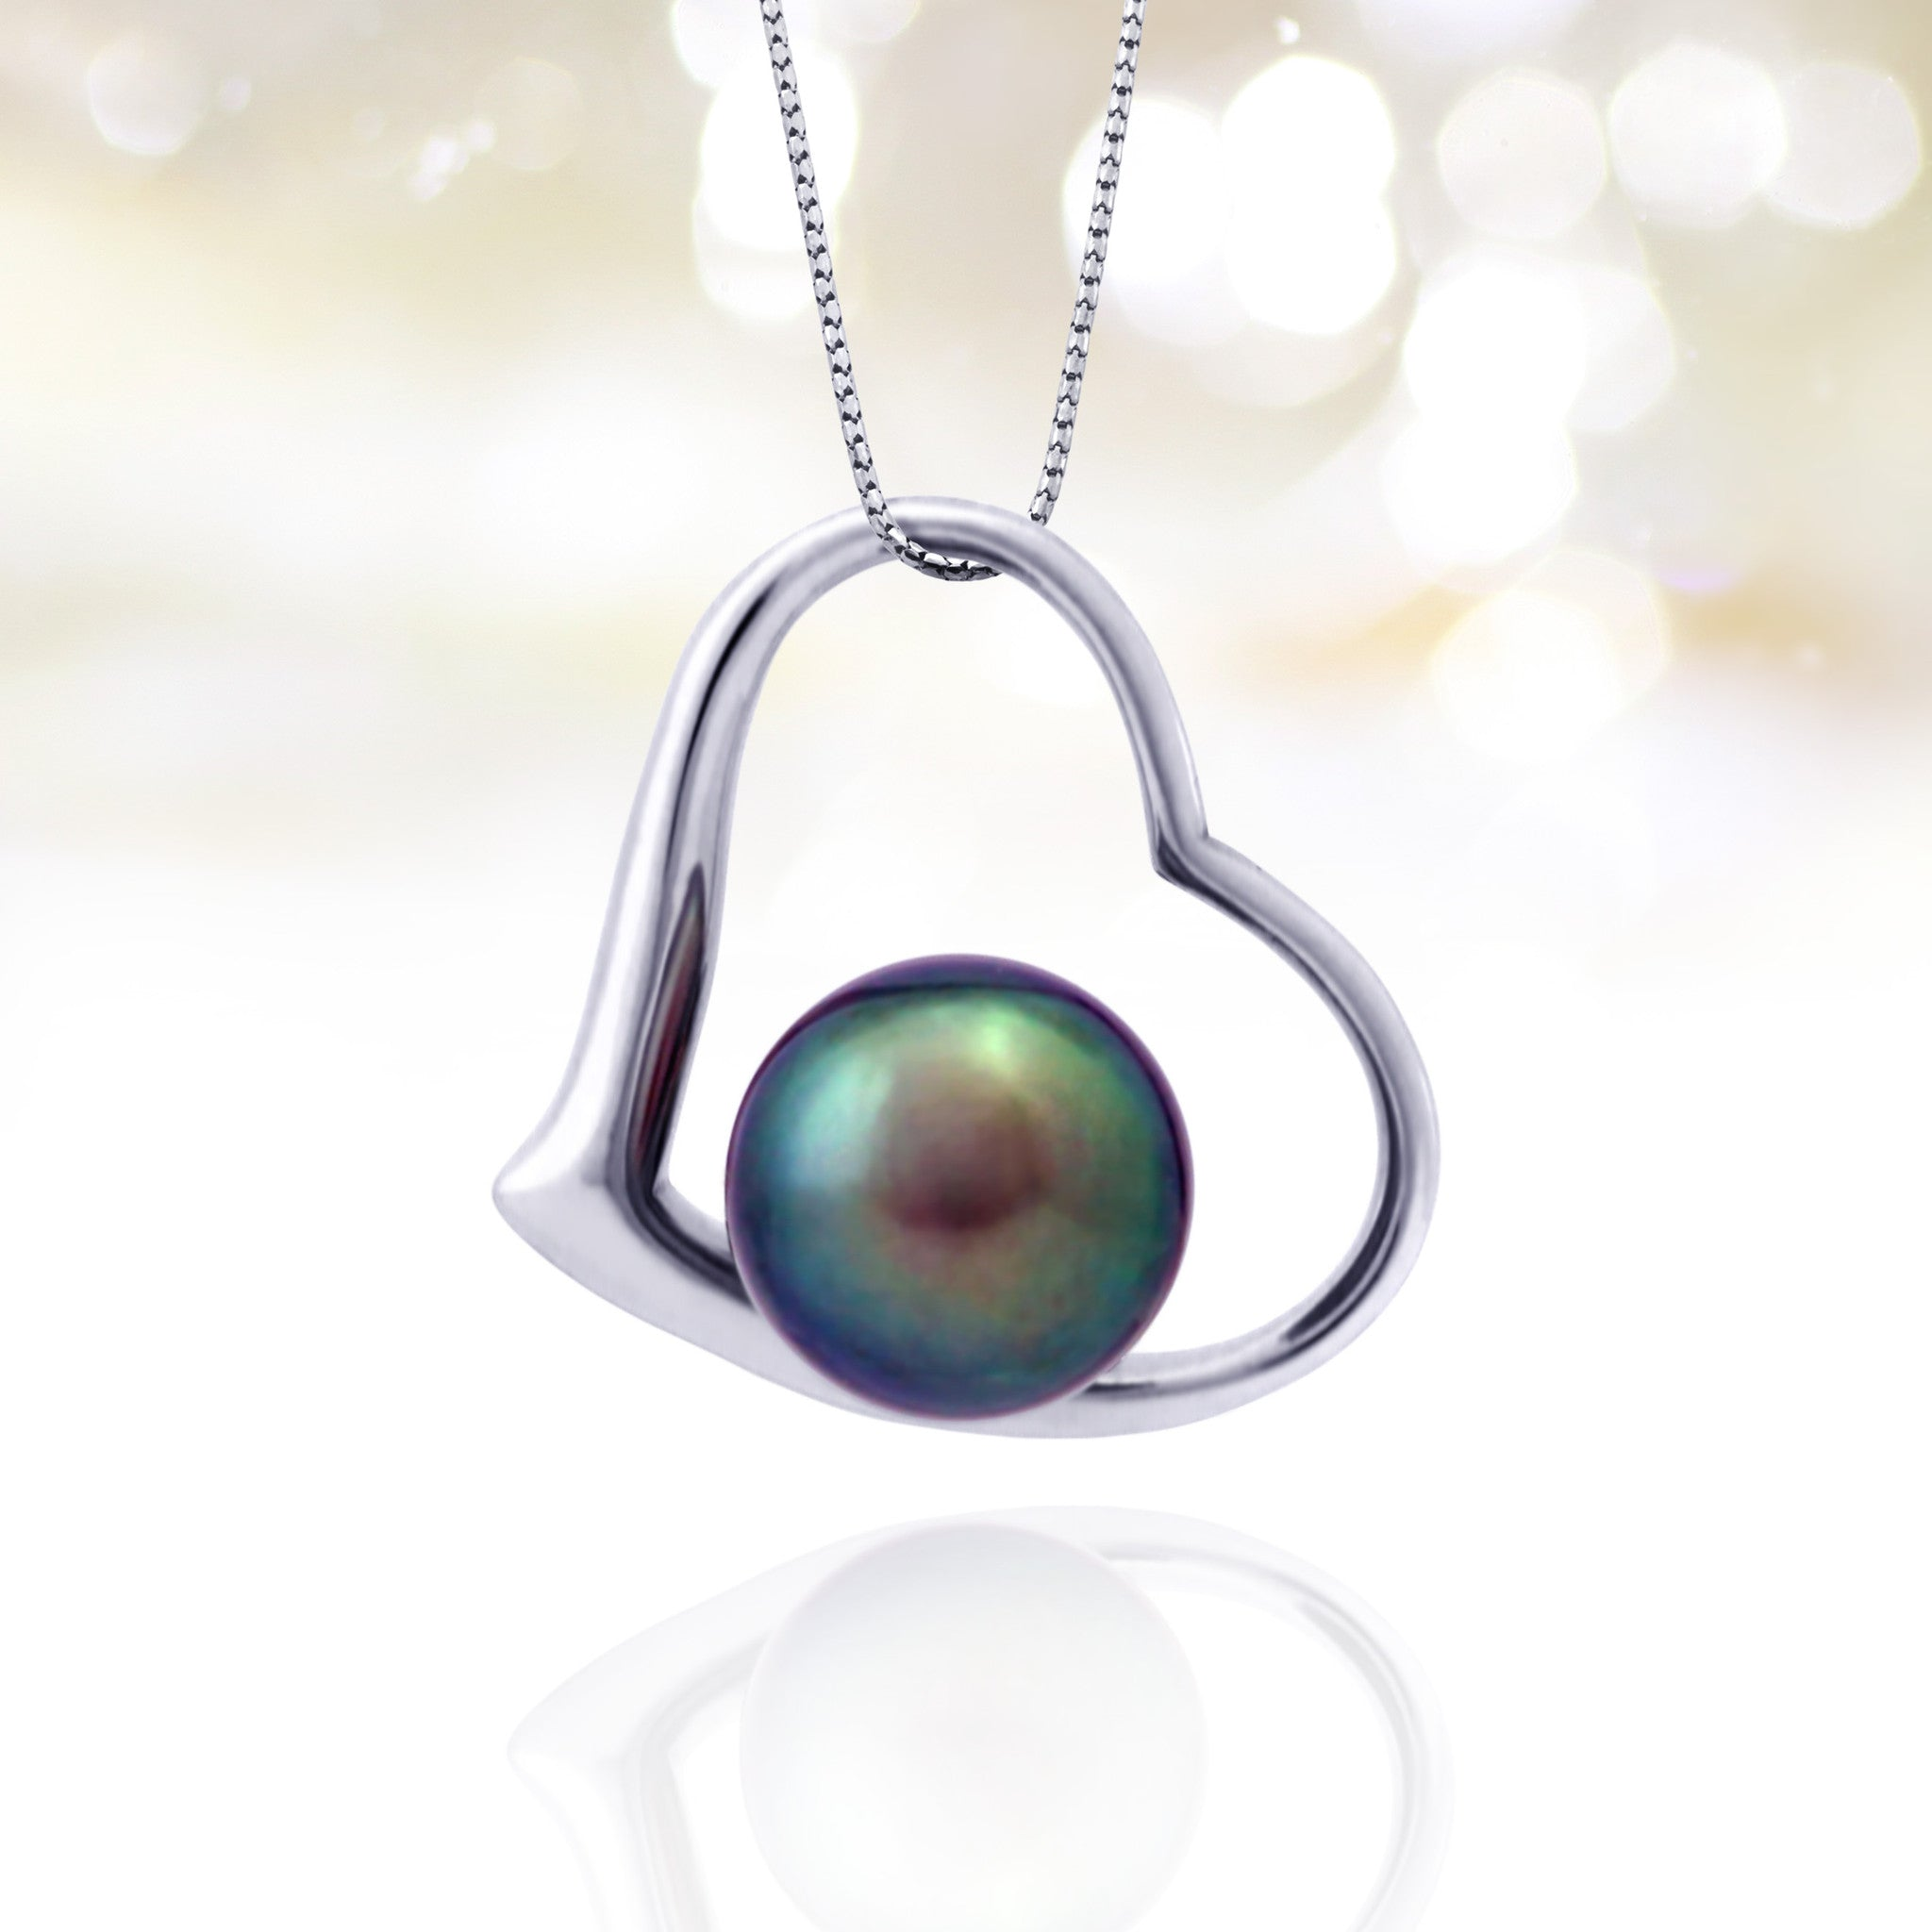 Tahitian pearl pendant - 18k white gold - Forever -PEWGPE01168